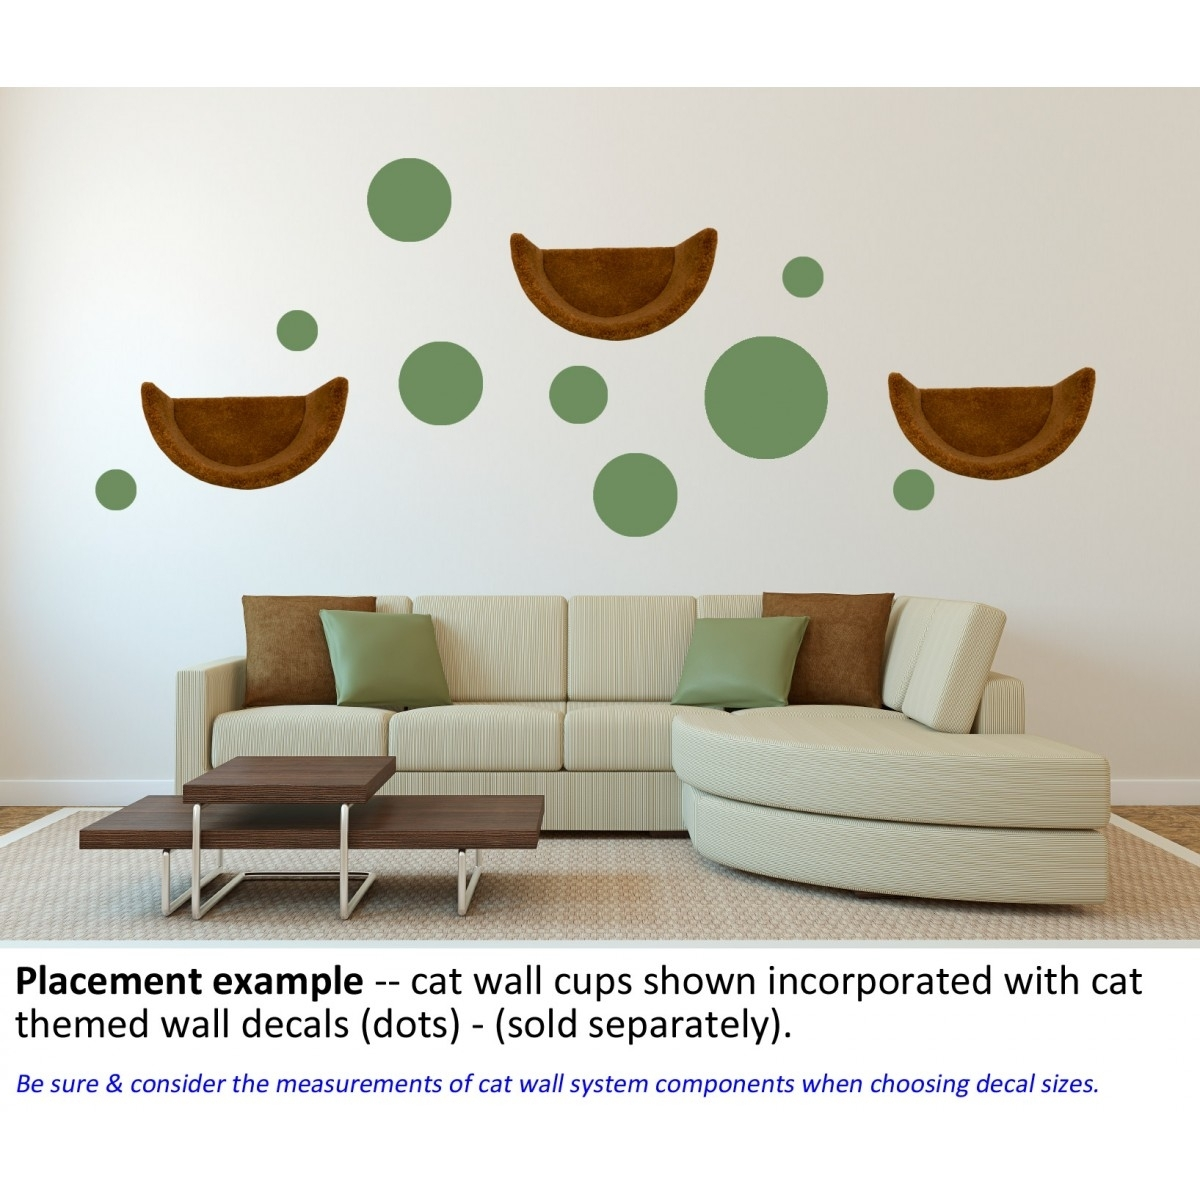 Themed Wall Accent Decal – Dots & Circles Within Most Up To Date Wall Accent Decals (View 13 of 15)